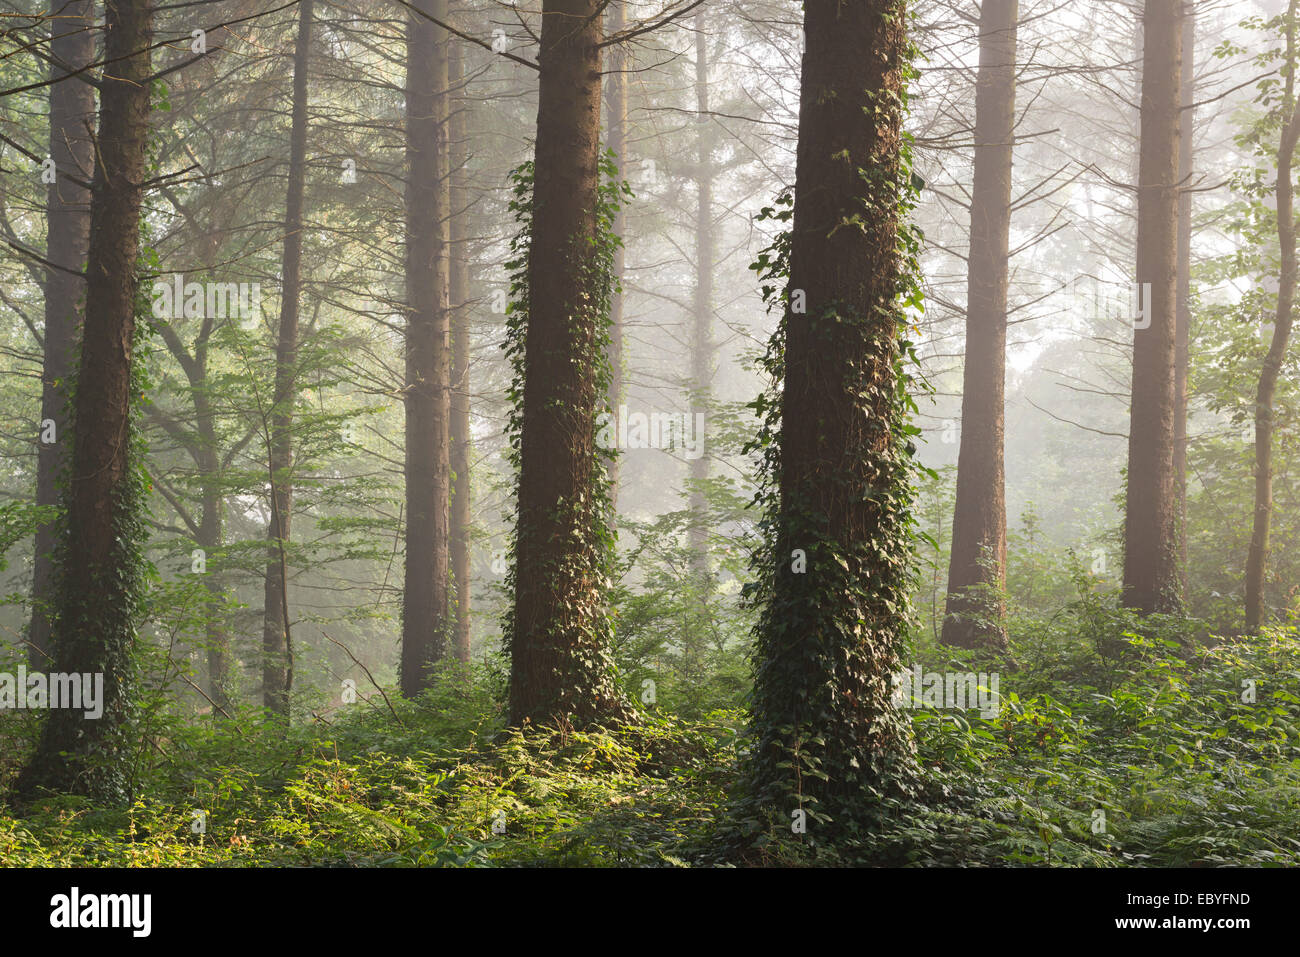 Pine forest with early morning sunlight, Morchard Bishop, Devon, England. Autumn (September) 2014. - Stock Image